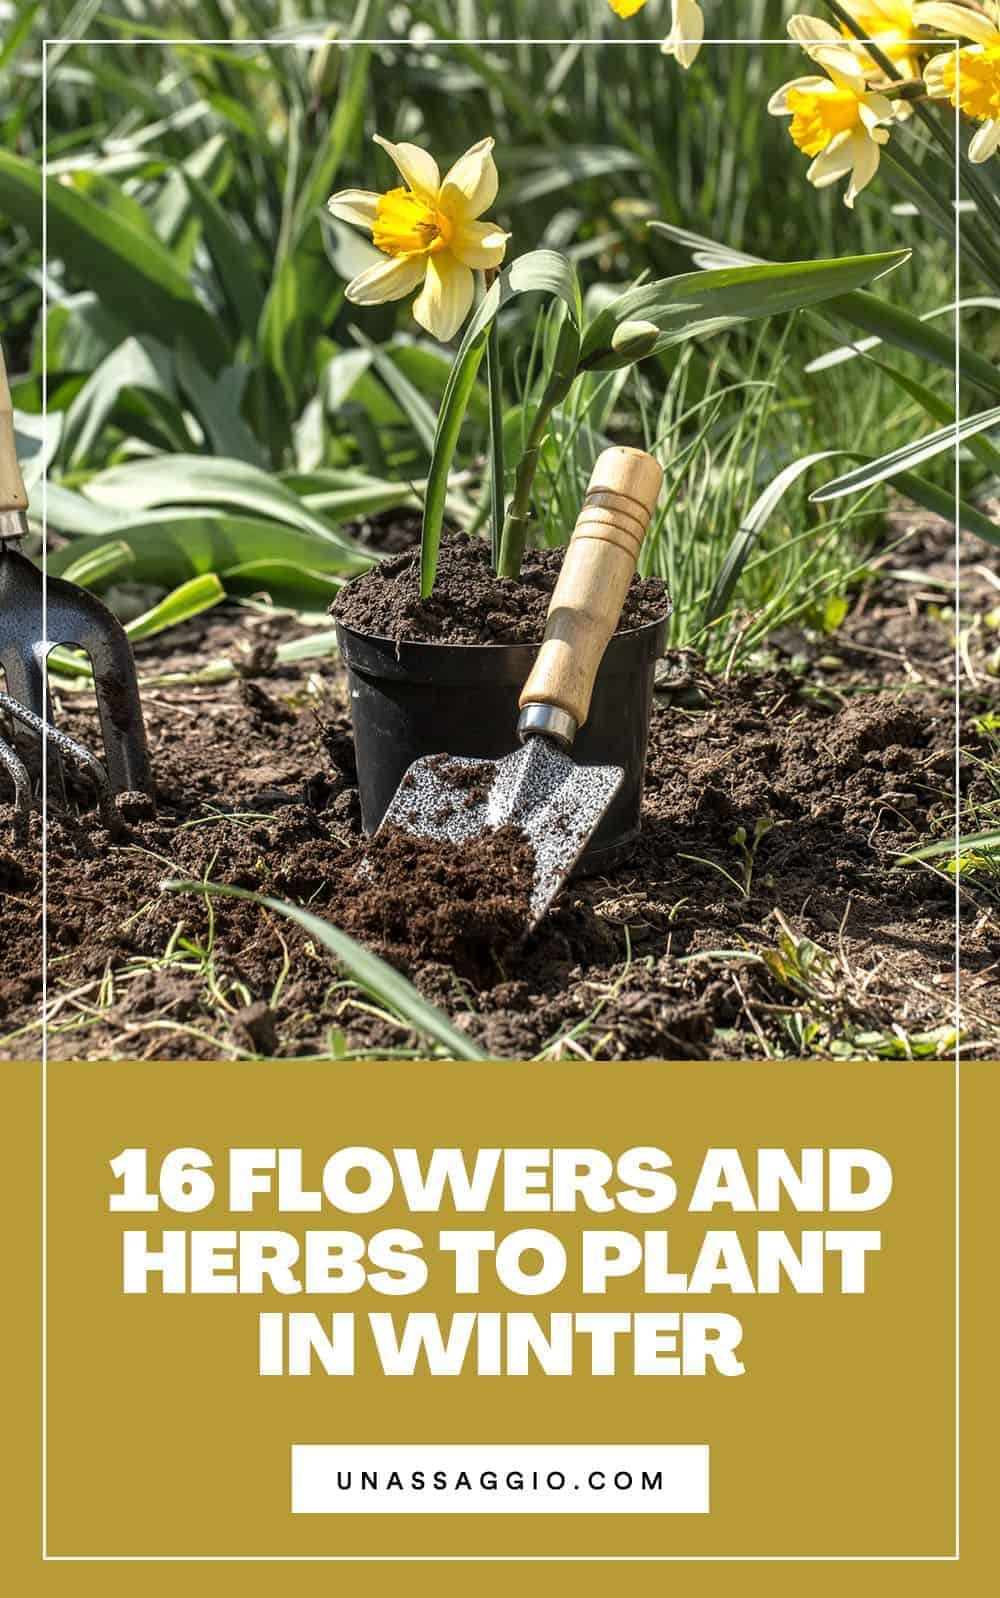 16 Flowers and Herbs to Plant in Winter